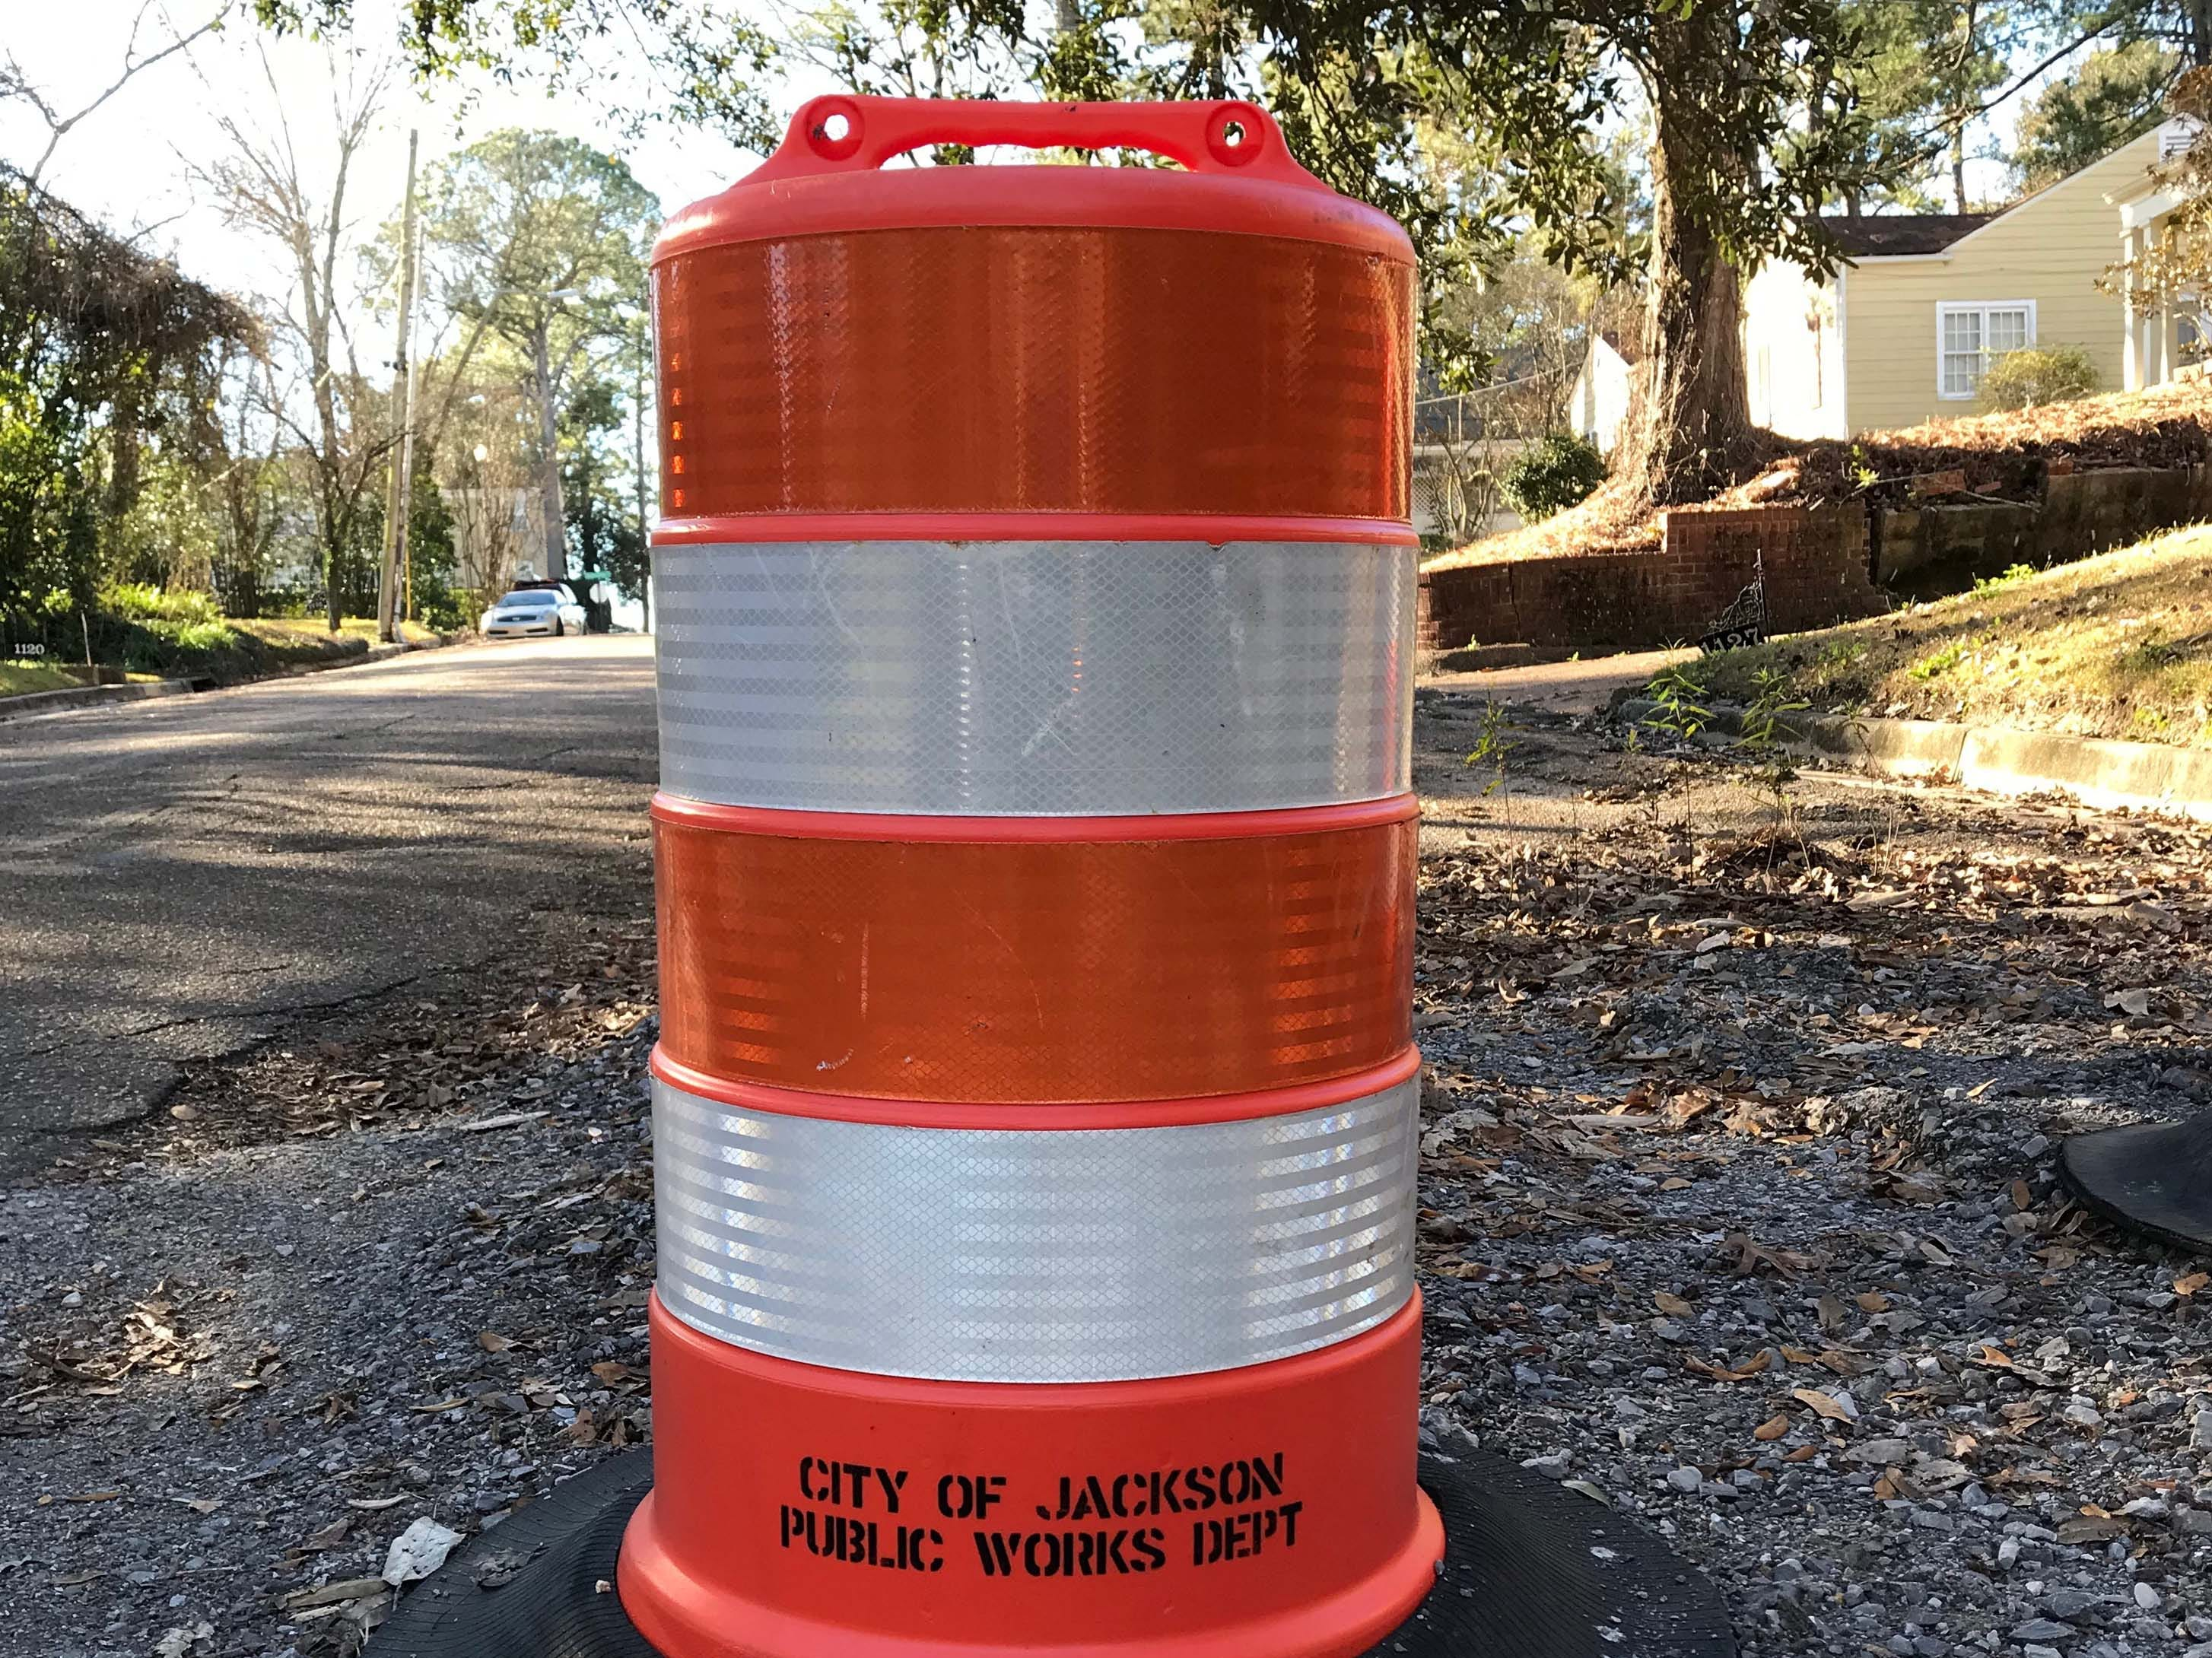 A City of Jackson Public Works Department barrel sits atop unfinished road patching on Quinn Street in the Belhaven neighborhood of Jackson, Miss. The road has suffered multiple water main breaks and a bridge on the street is falling into a creek running beneath the street. Thursday, January 10, 2019